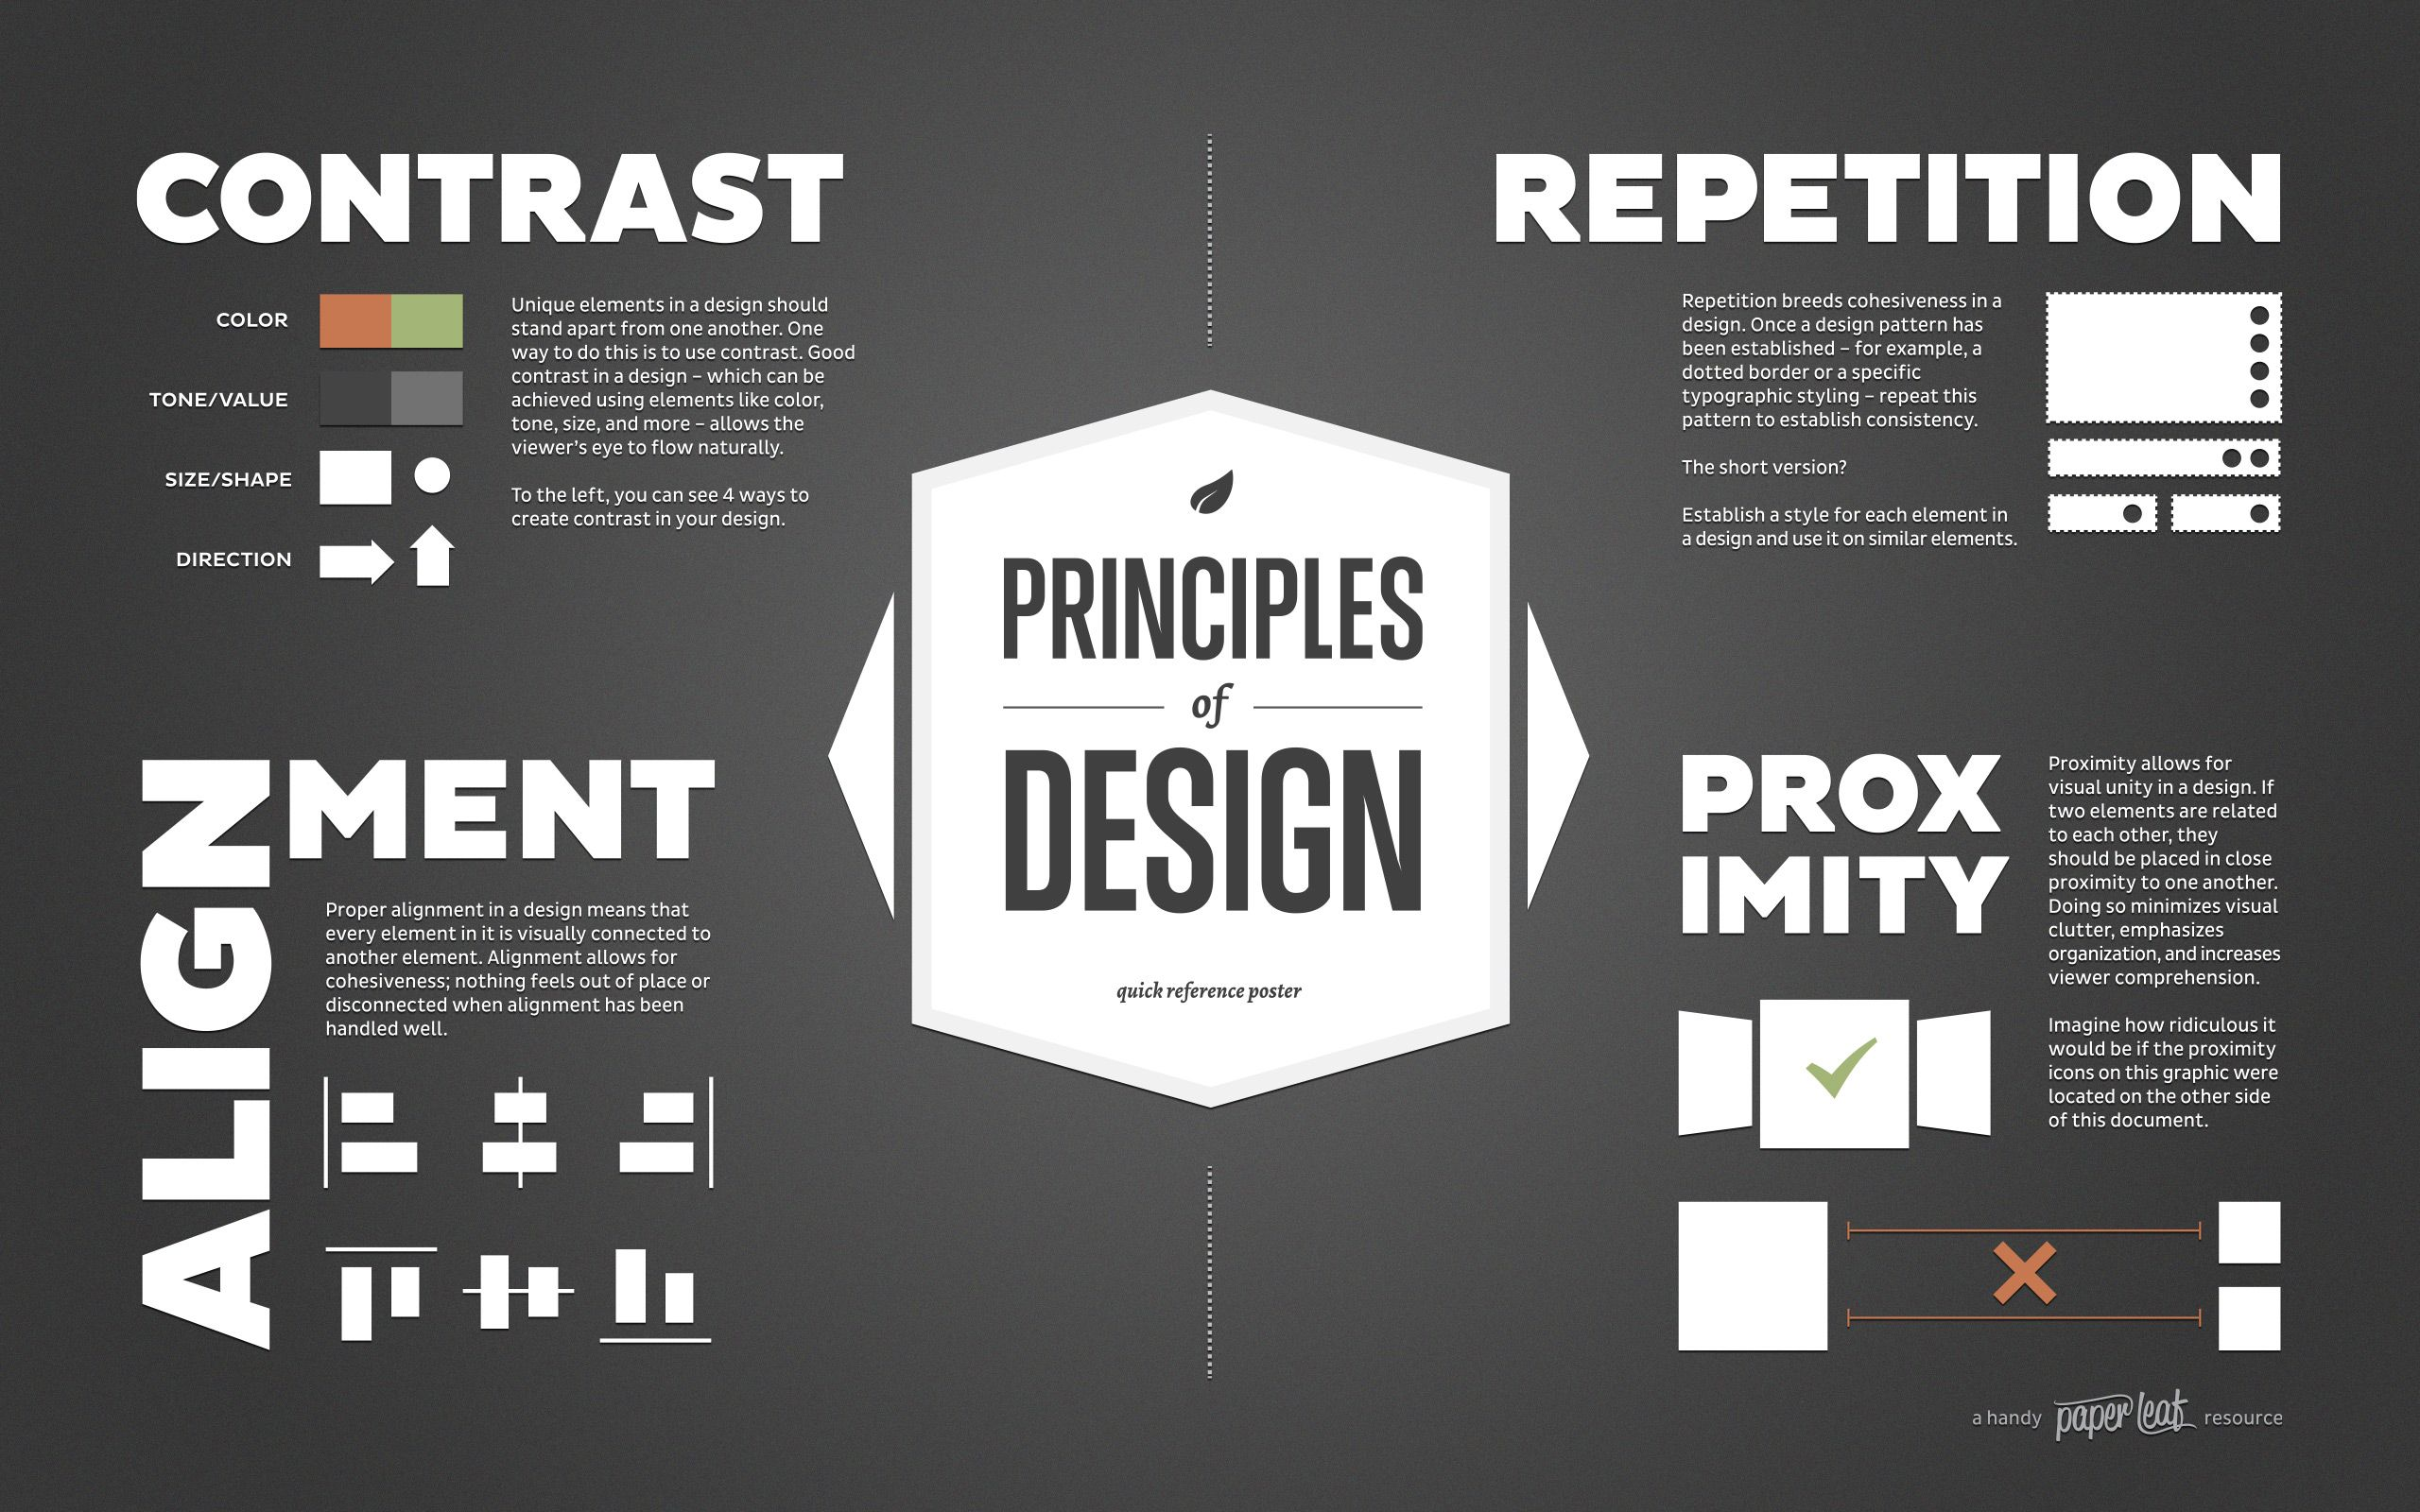 Creating Quality Web Content Tips And Strategies Design Theory Principles Of Design Design Basics